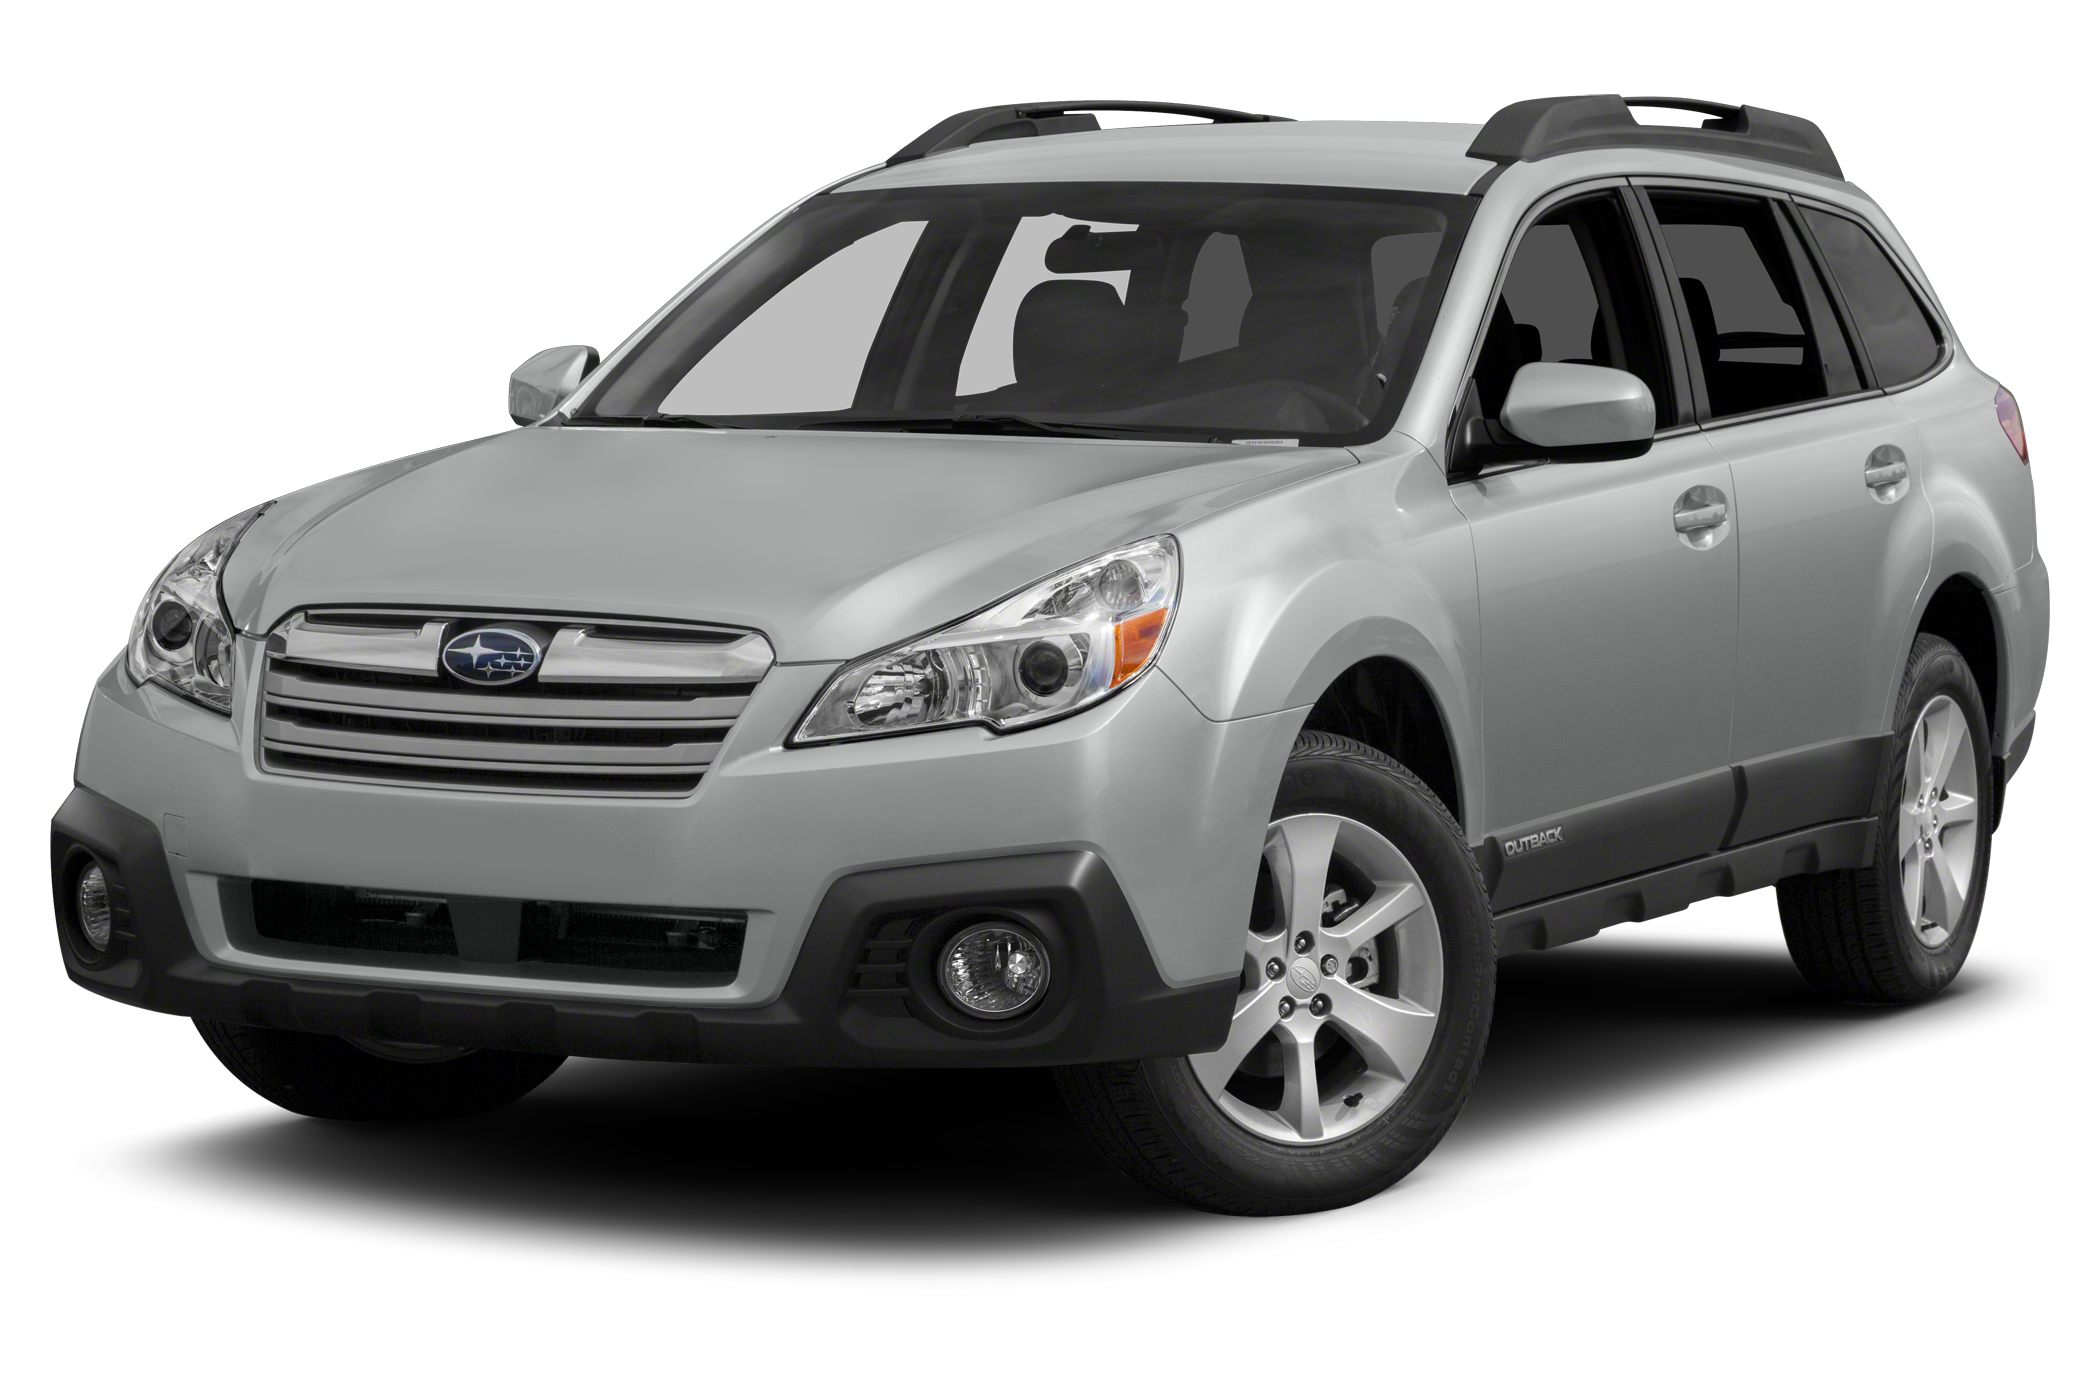 2013 Subaru Outback 2.5i Premium Wagon for sale in Washington for $22,933 with 22,098 miles